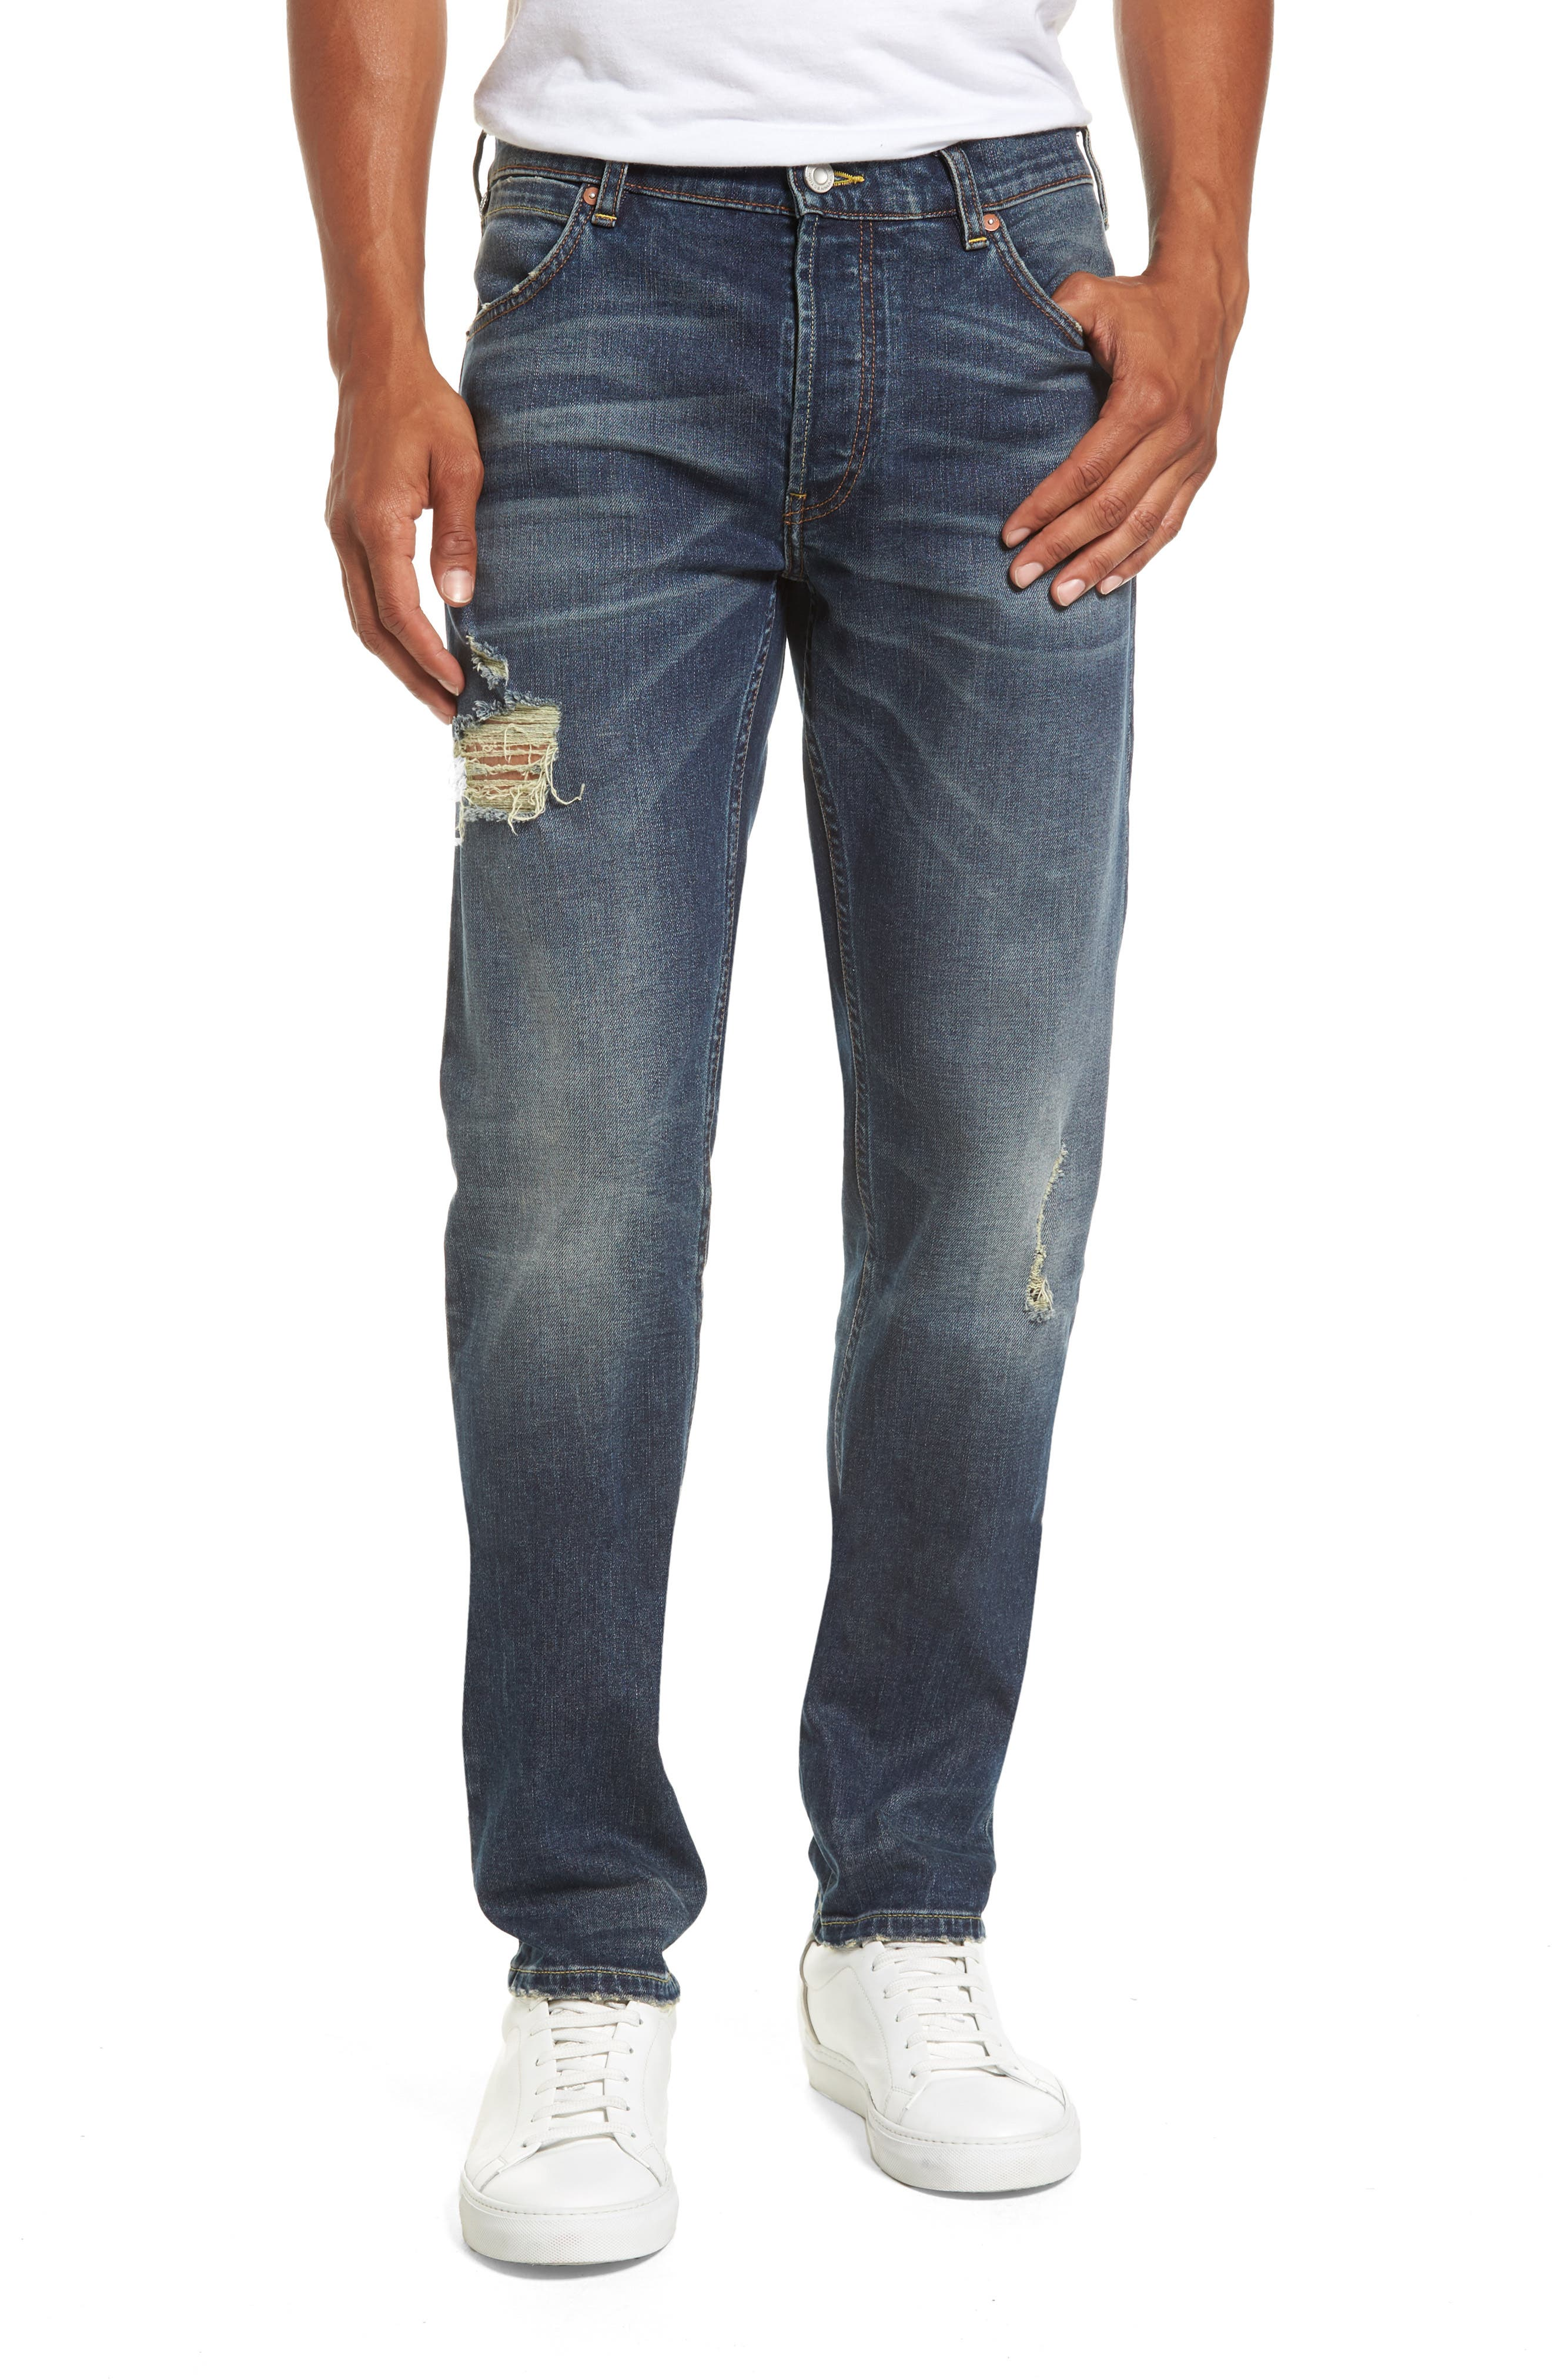 Alternate Image 1 Selected - French Connection Slim Fit Distressed Jeans (Vintage & Holes)